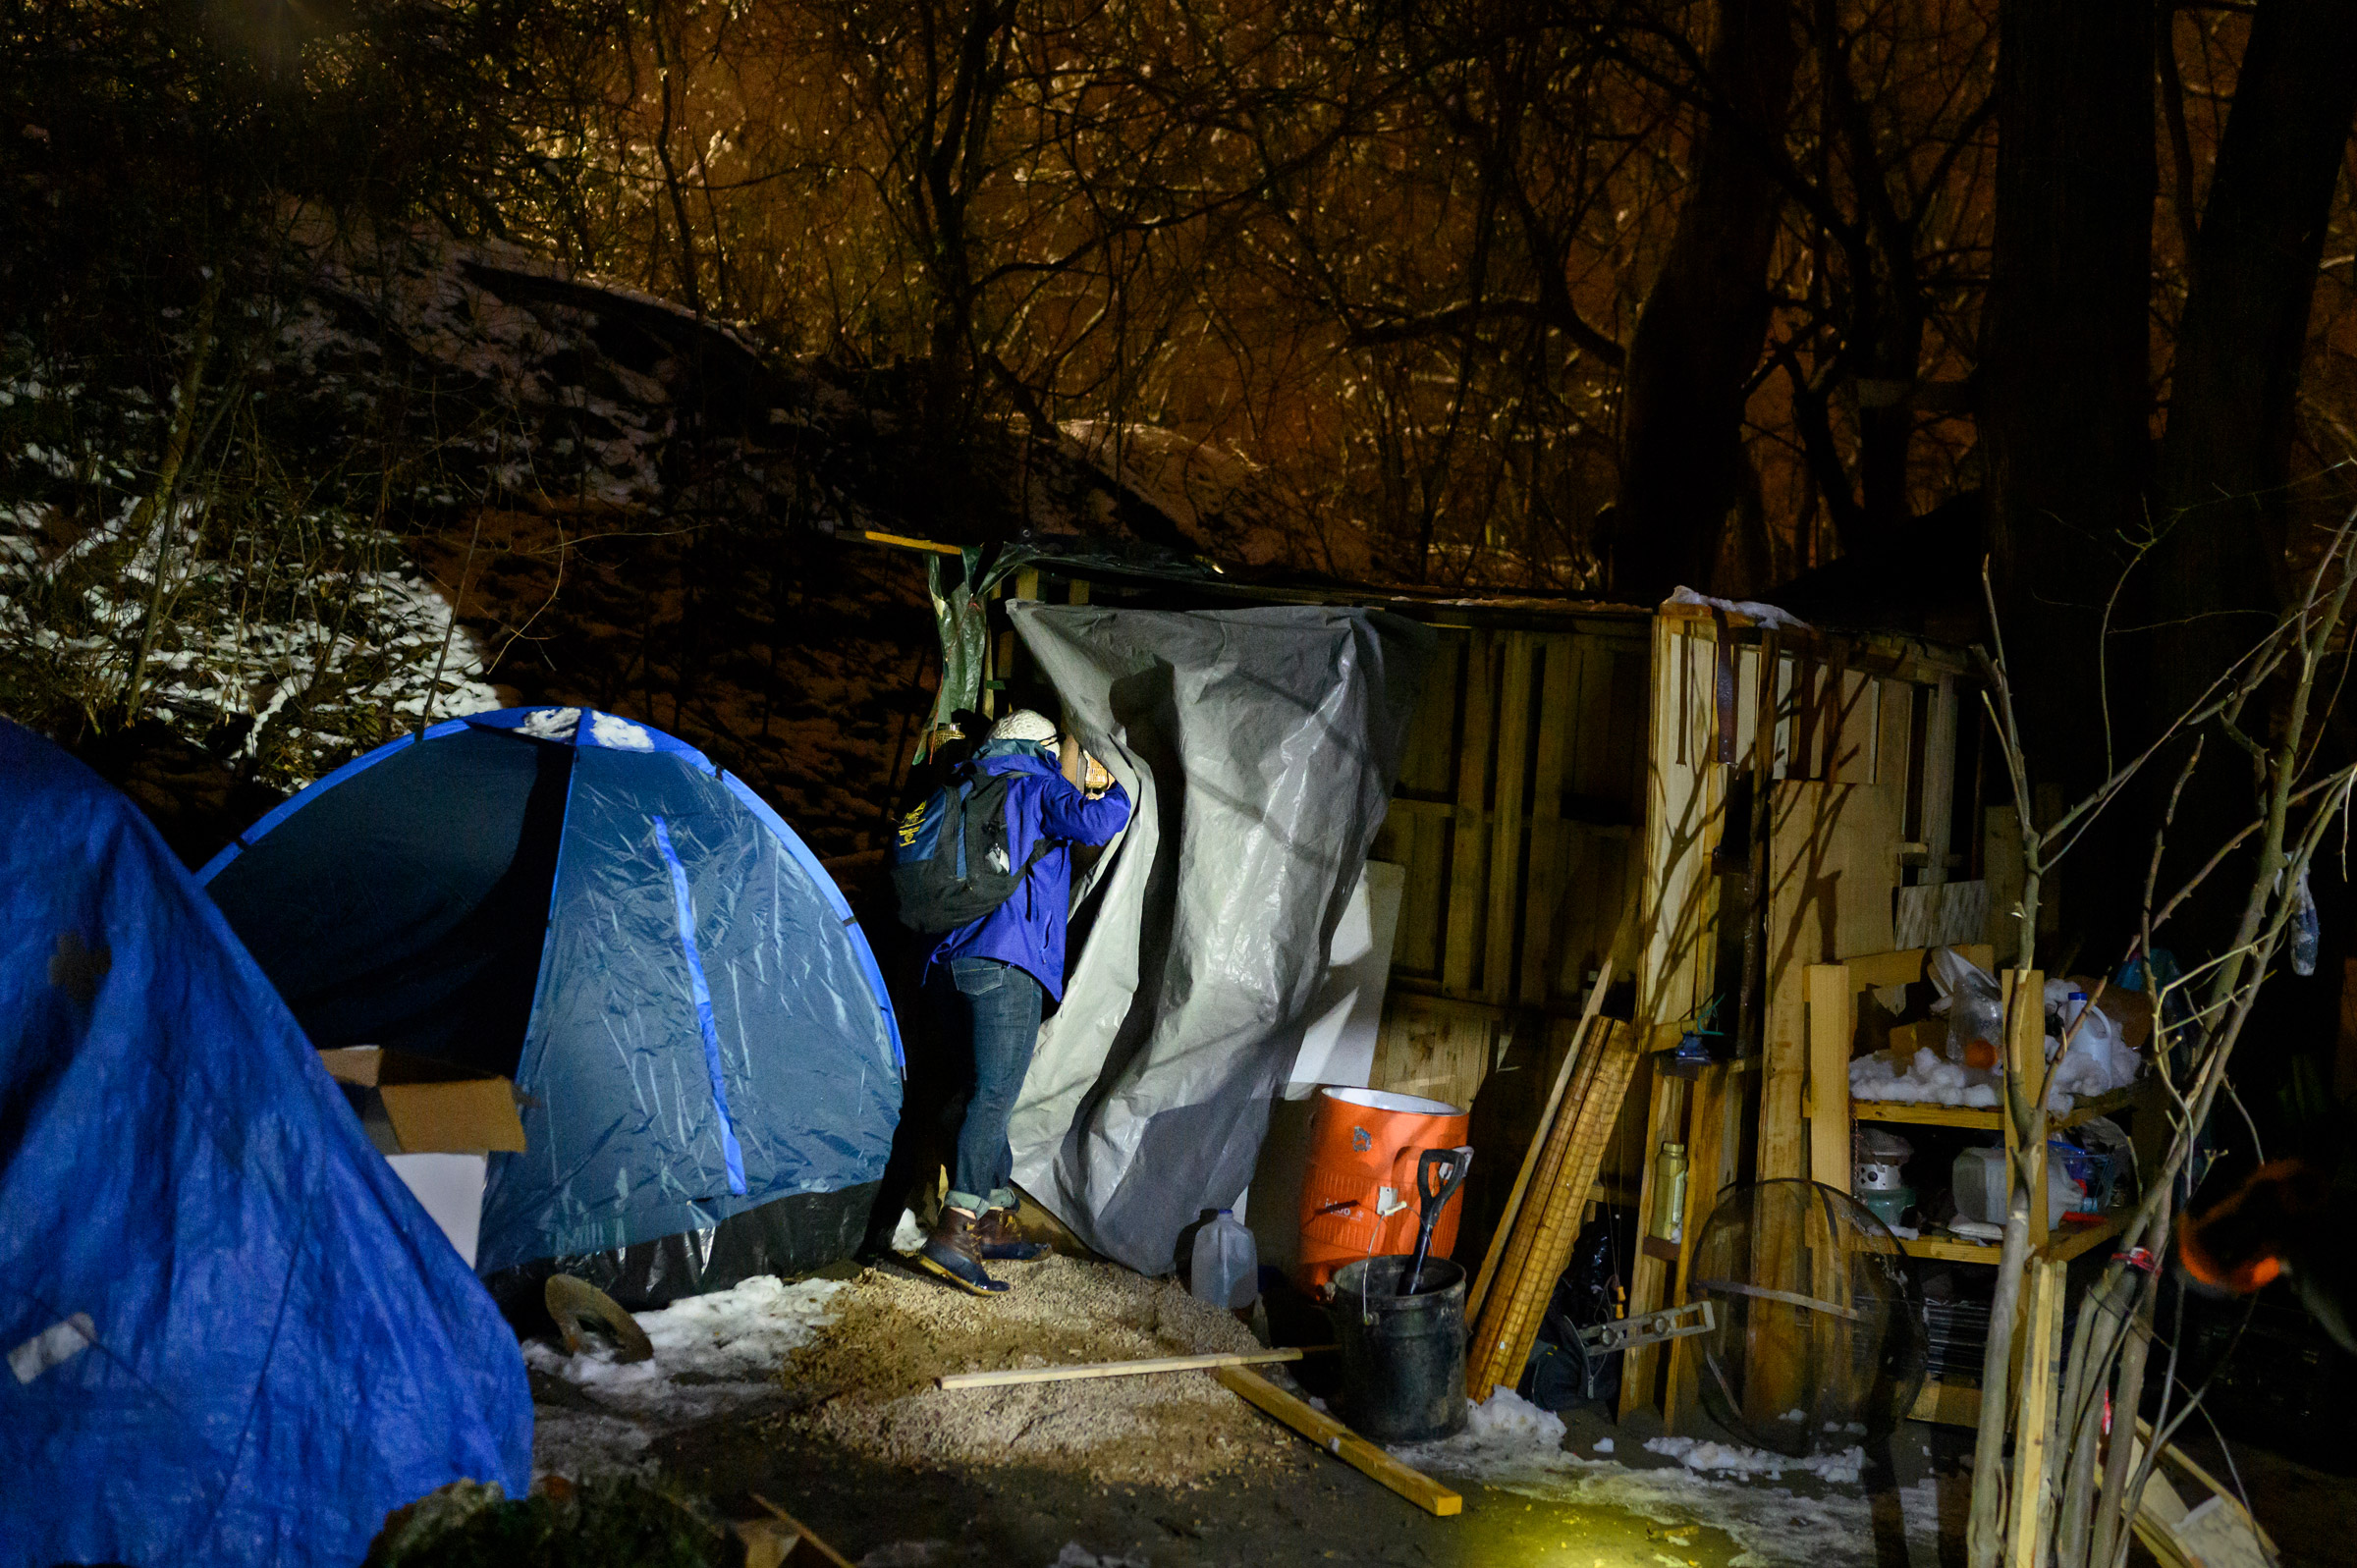 Nurse Crystal Bauer checks on a resident at a homeless encampment on Dec 18. Bauer helped start Project Hope, a street-medicine program supported through community donations.